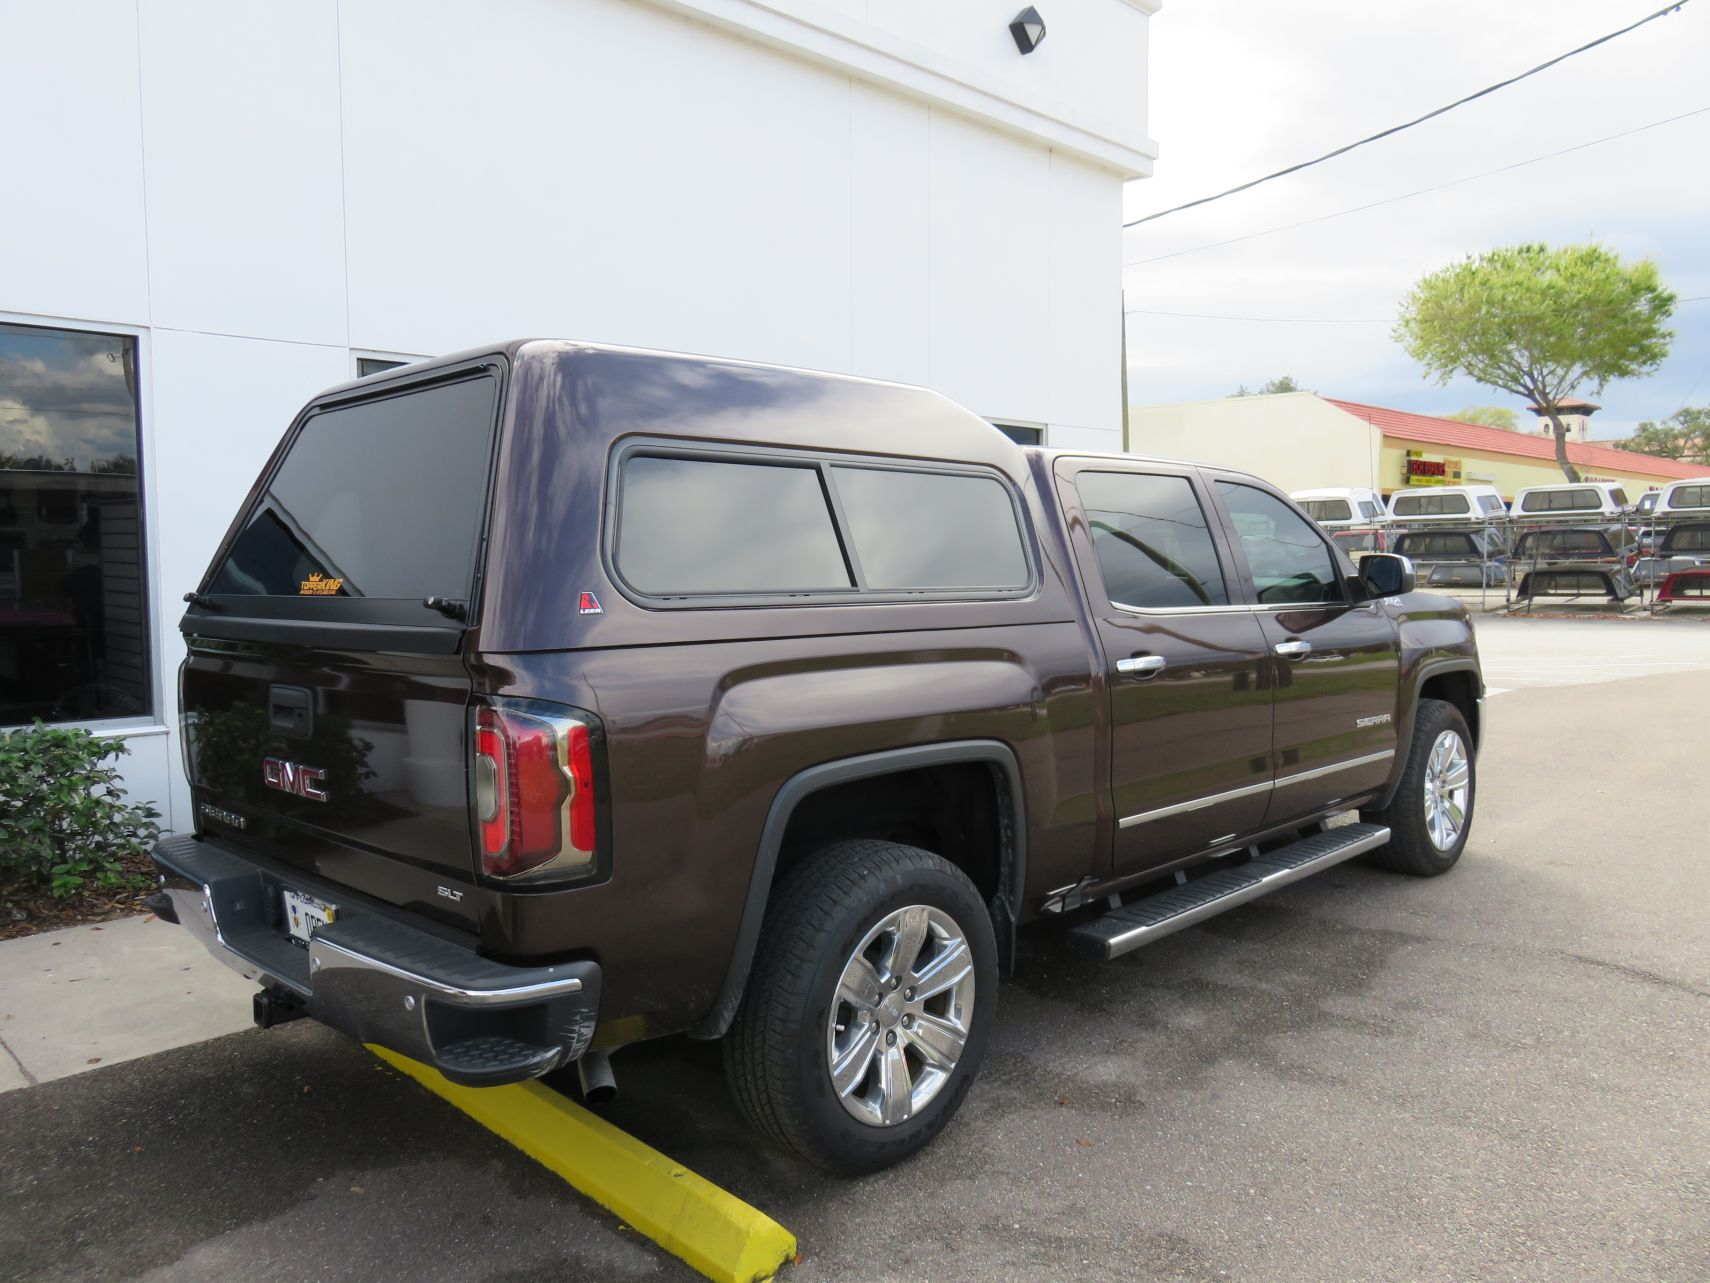 2018 Chevy Silverado with LEER 180, Side Steps, Chrome, Tint, Hitch by TopperKING Brandon 813-689-2449 or Clearwater FL 727-530-9066. Call Us!